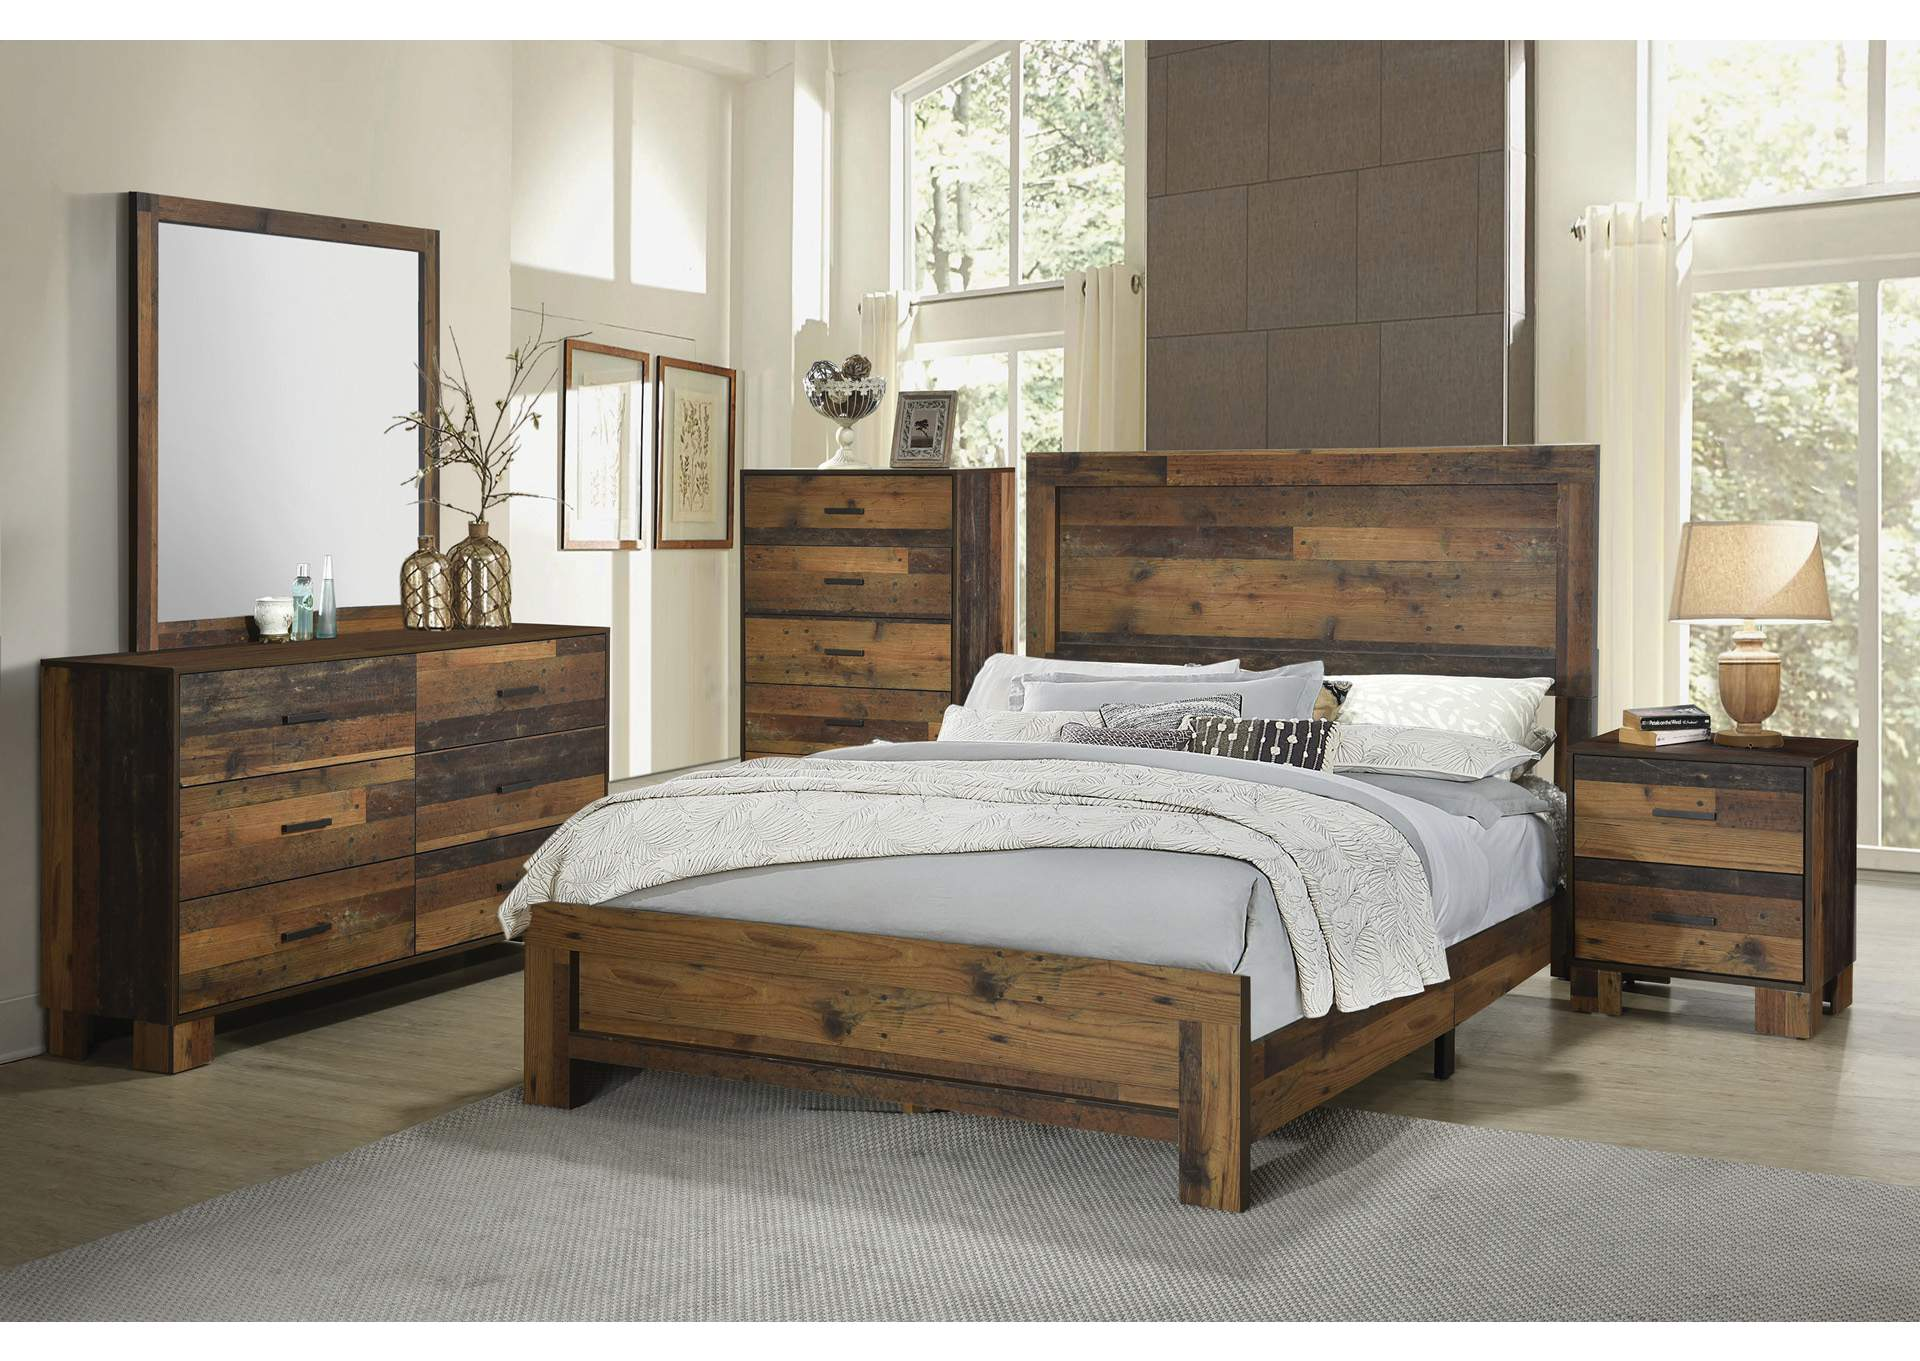 Sidney Soya Bean 5 Piece Eastern King Bedroom Set,Coaster Furniture